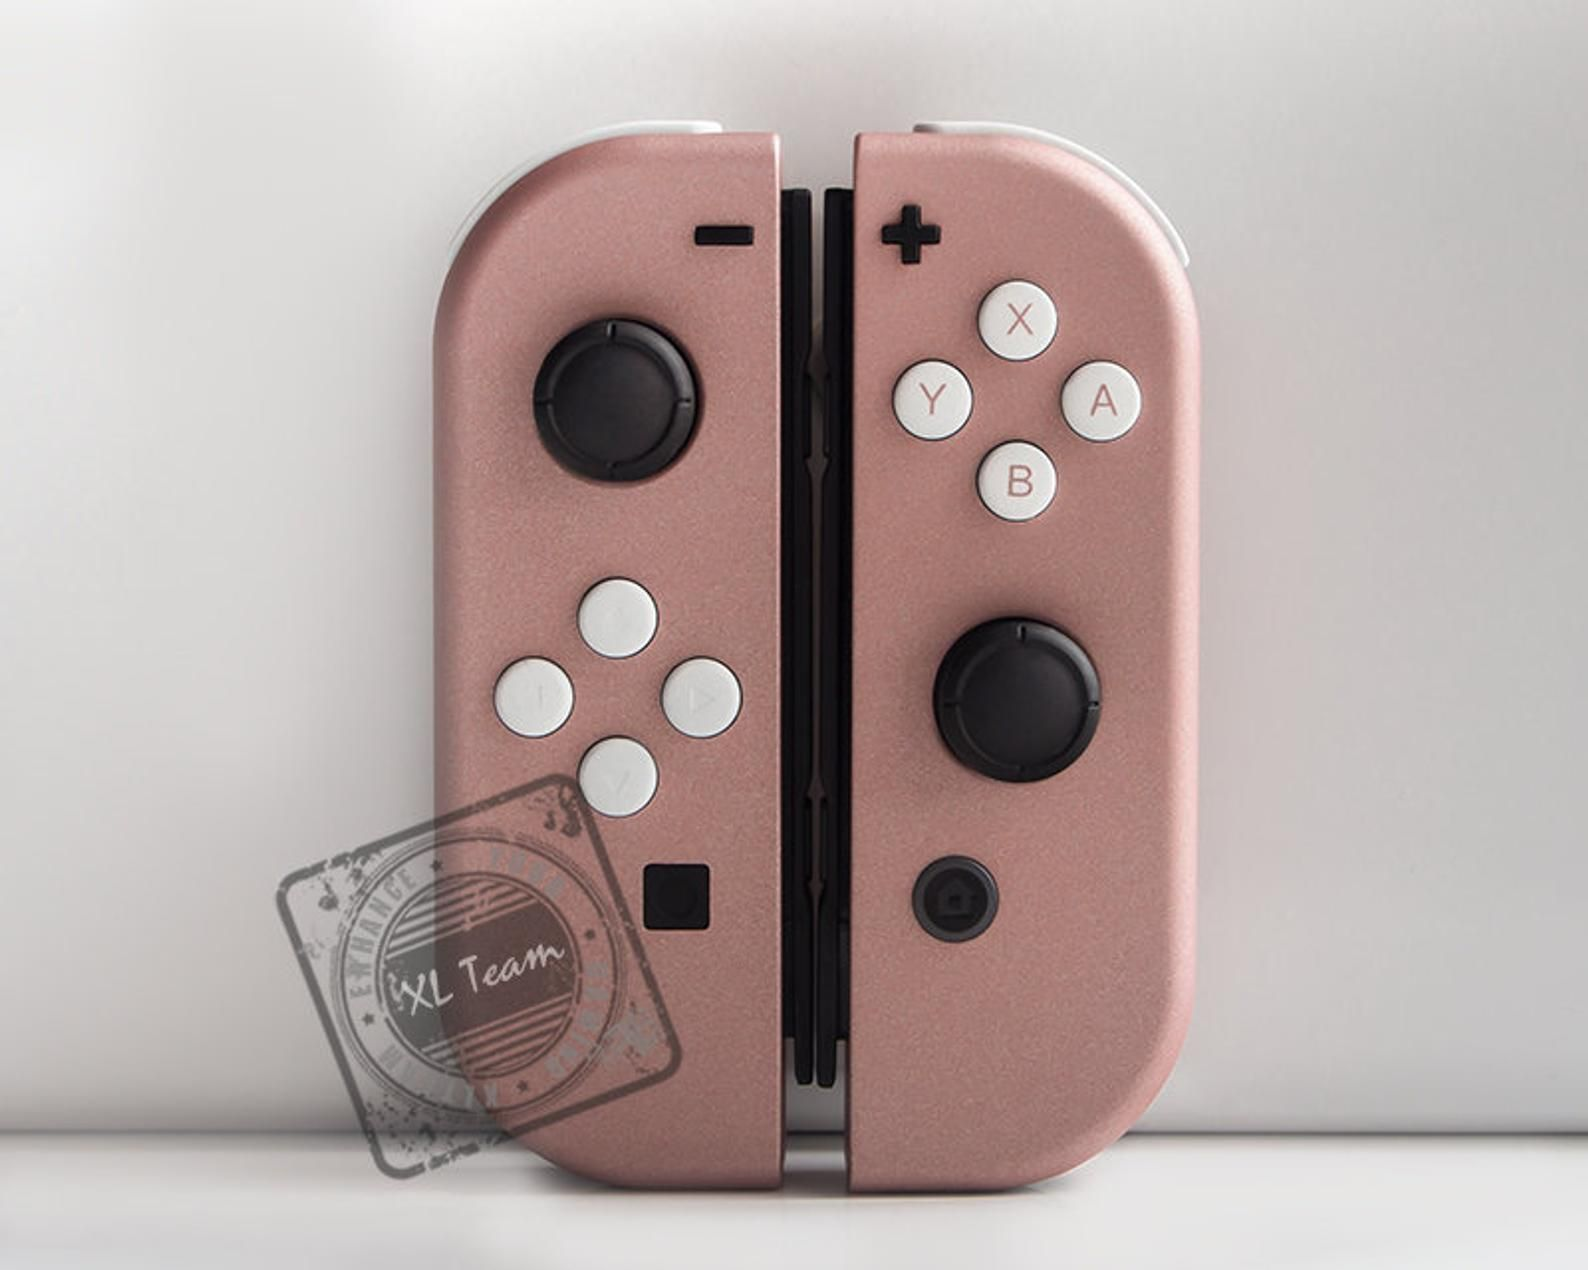 Custom Rose Gold Nintendo Switch Joy Con Joycon Controllers With White Buttons In 2020 Nintendo Switch Case Nintendo Switch Rose Gold